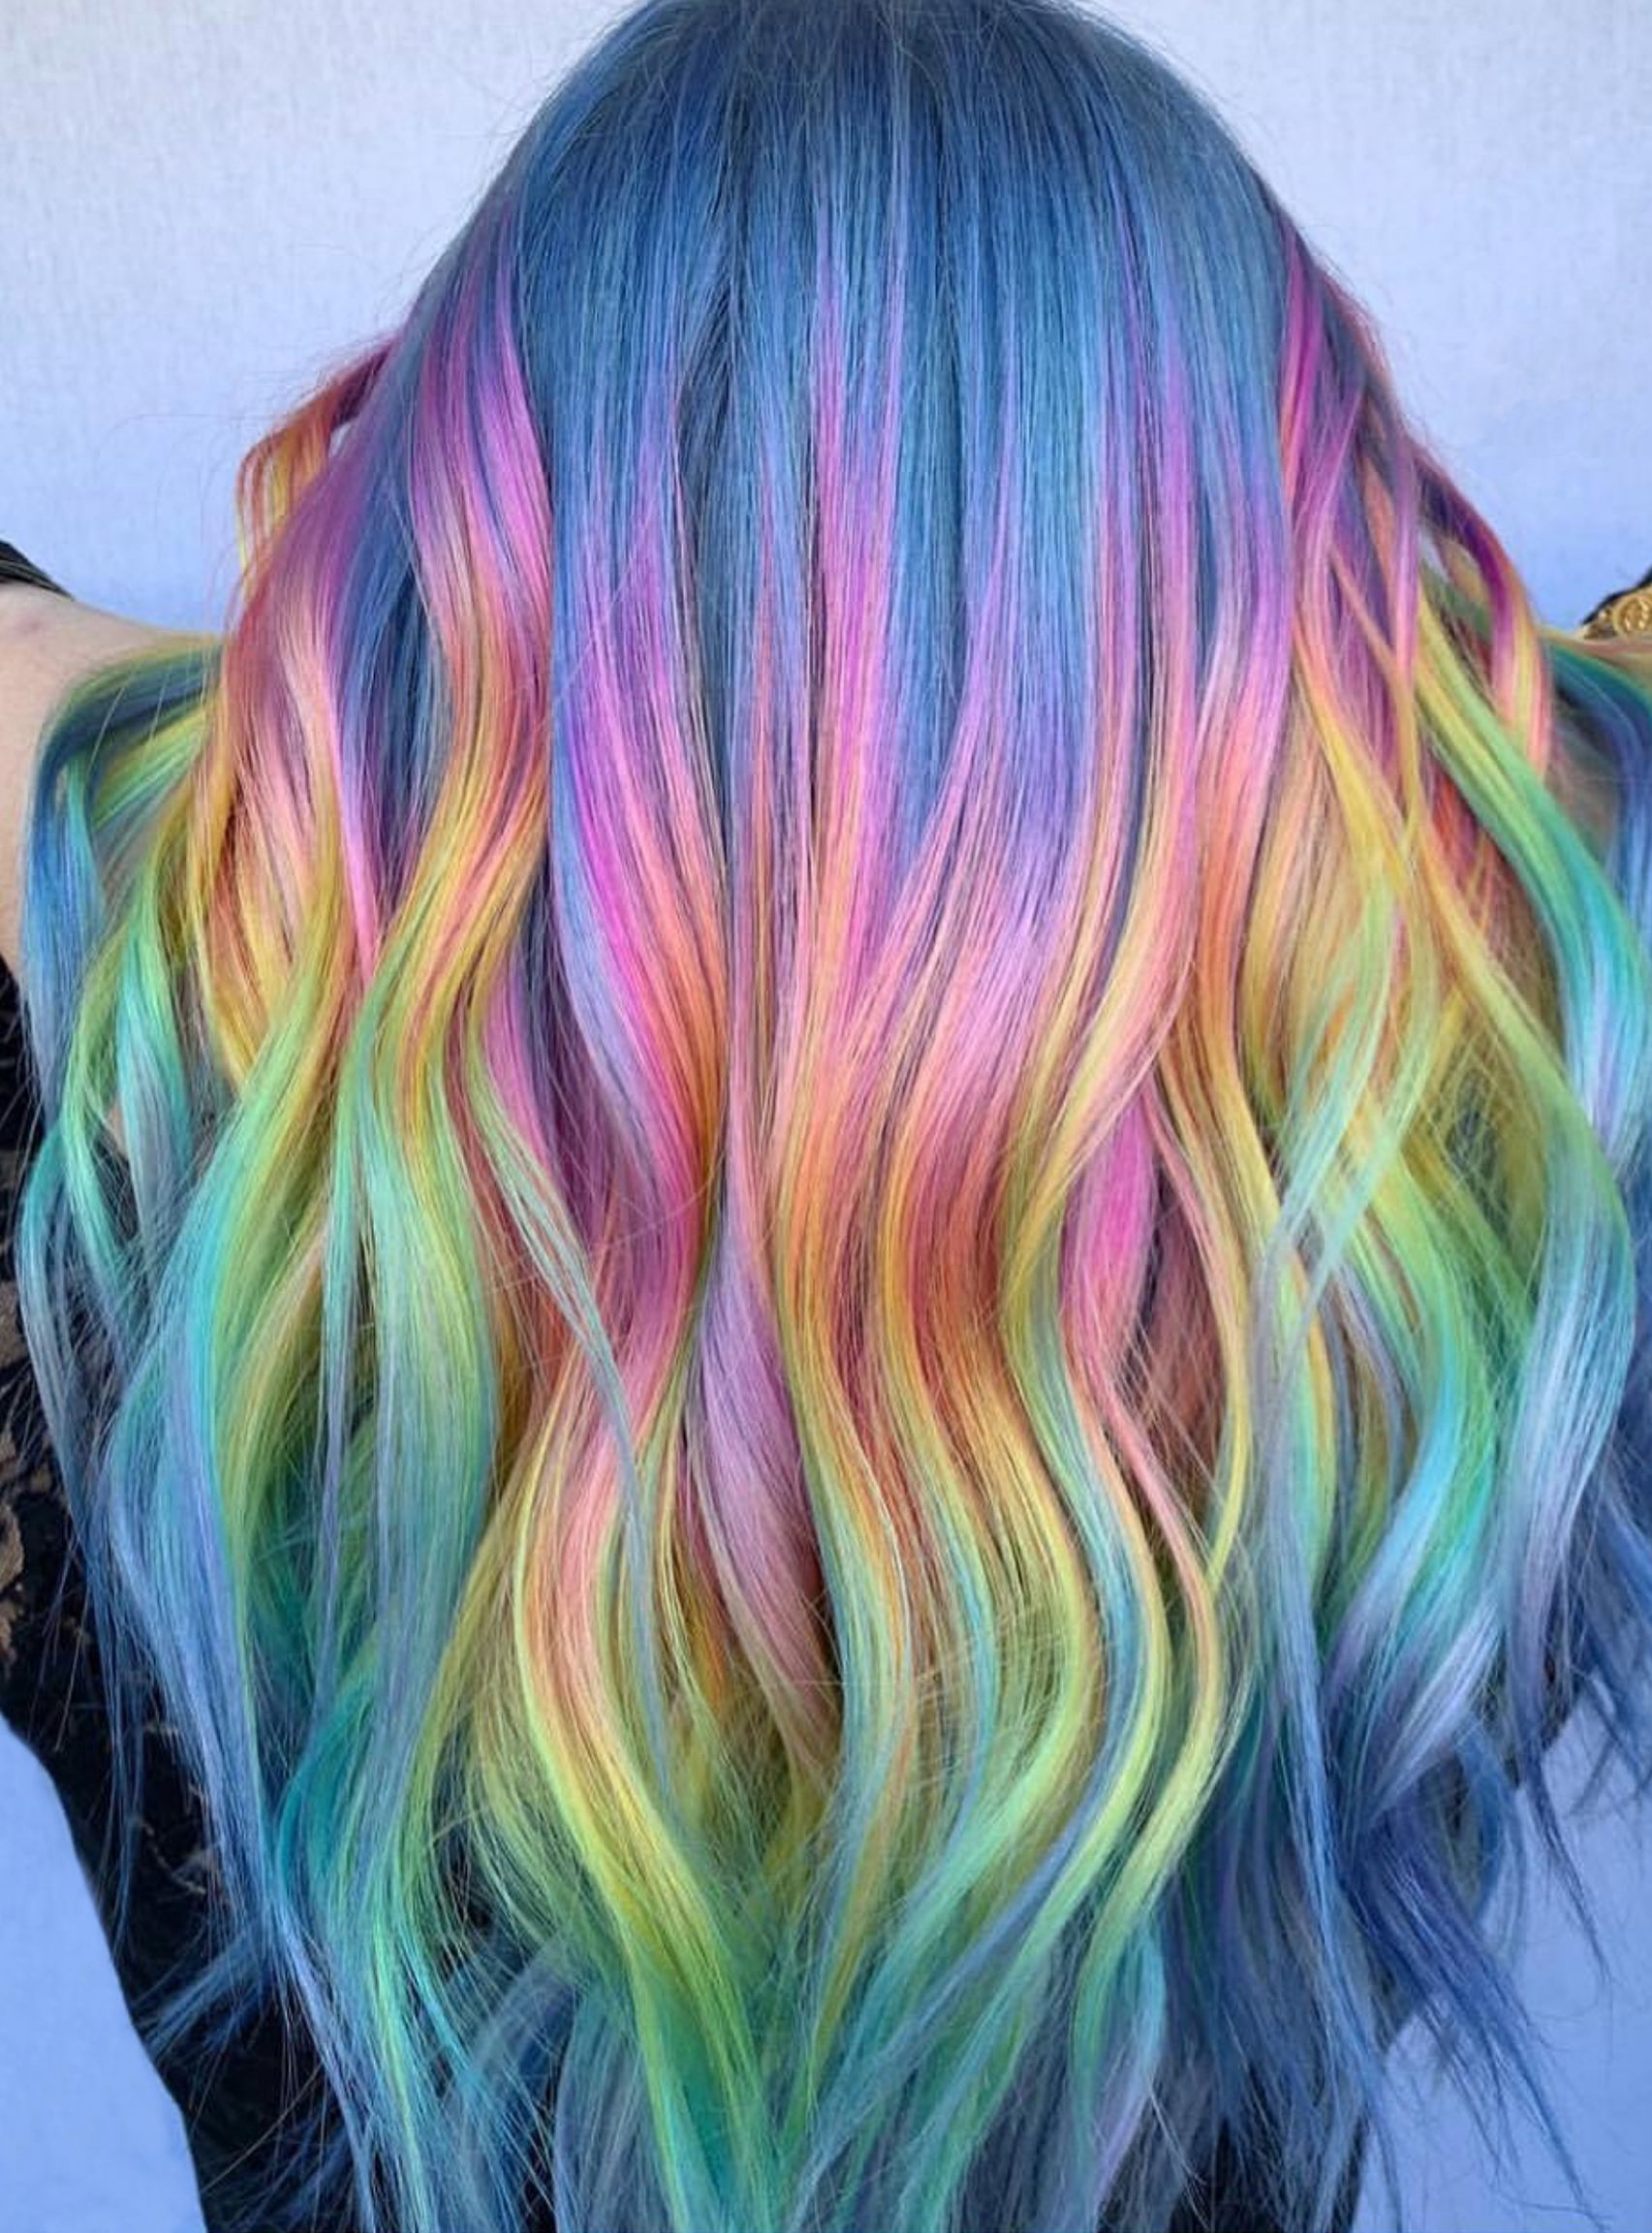 La S Coolest Hair Colour Brand Has Landed In Salons In The Uk Hair Color Brands Hair Colour Design Cool Hairstyles